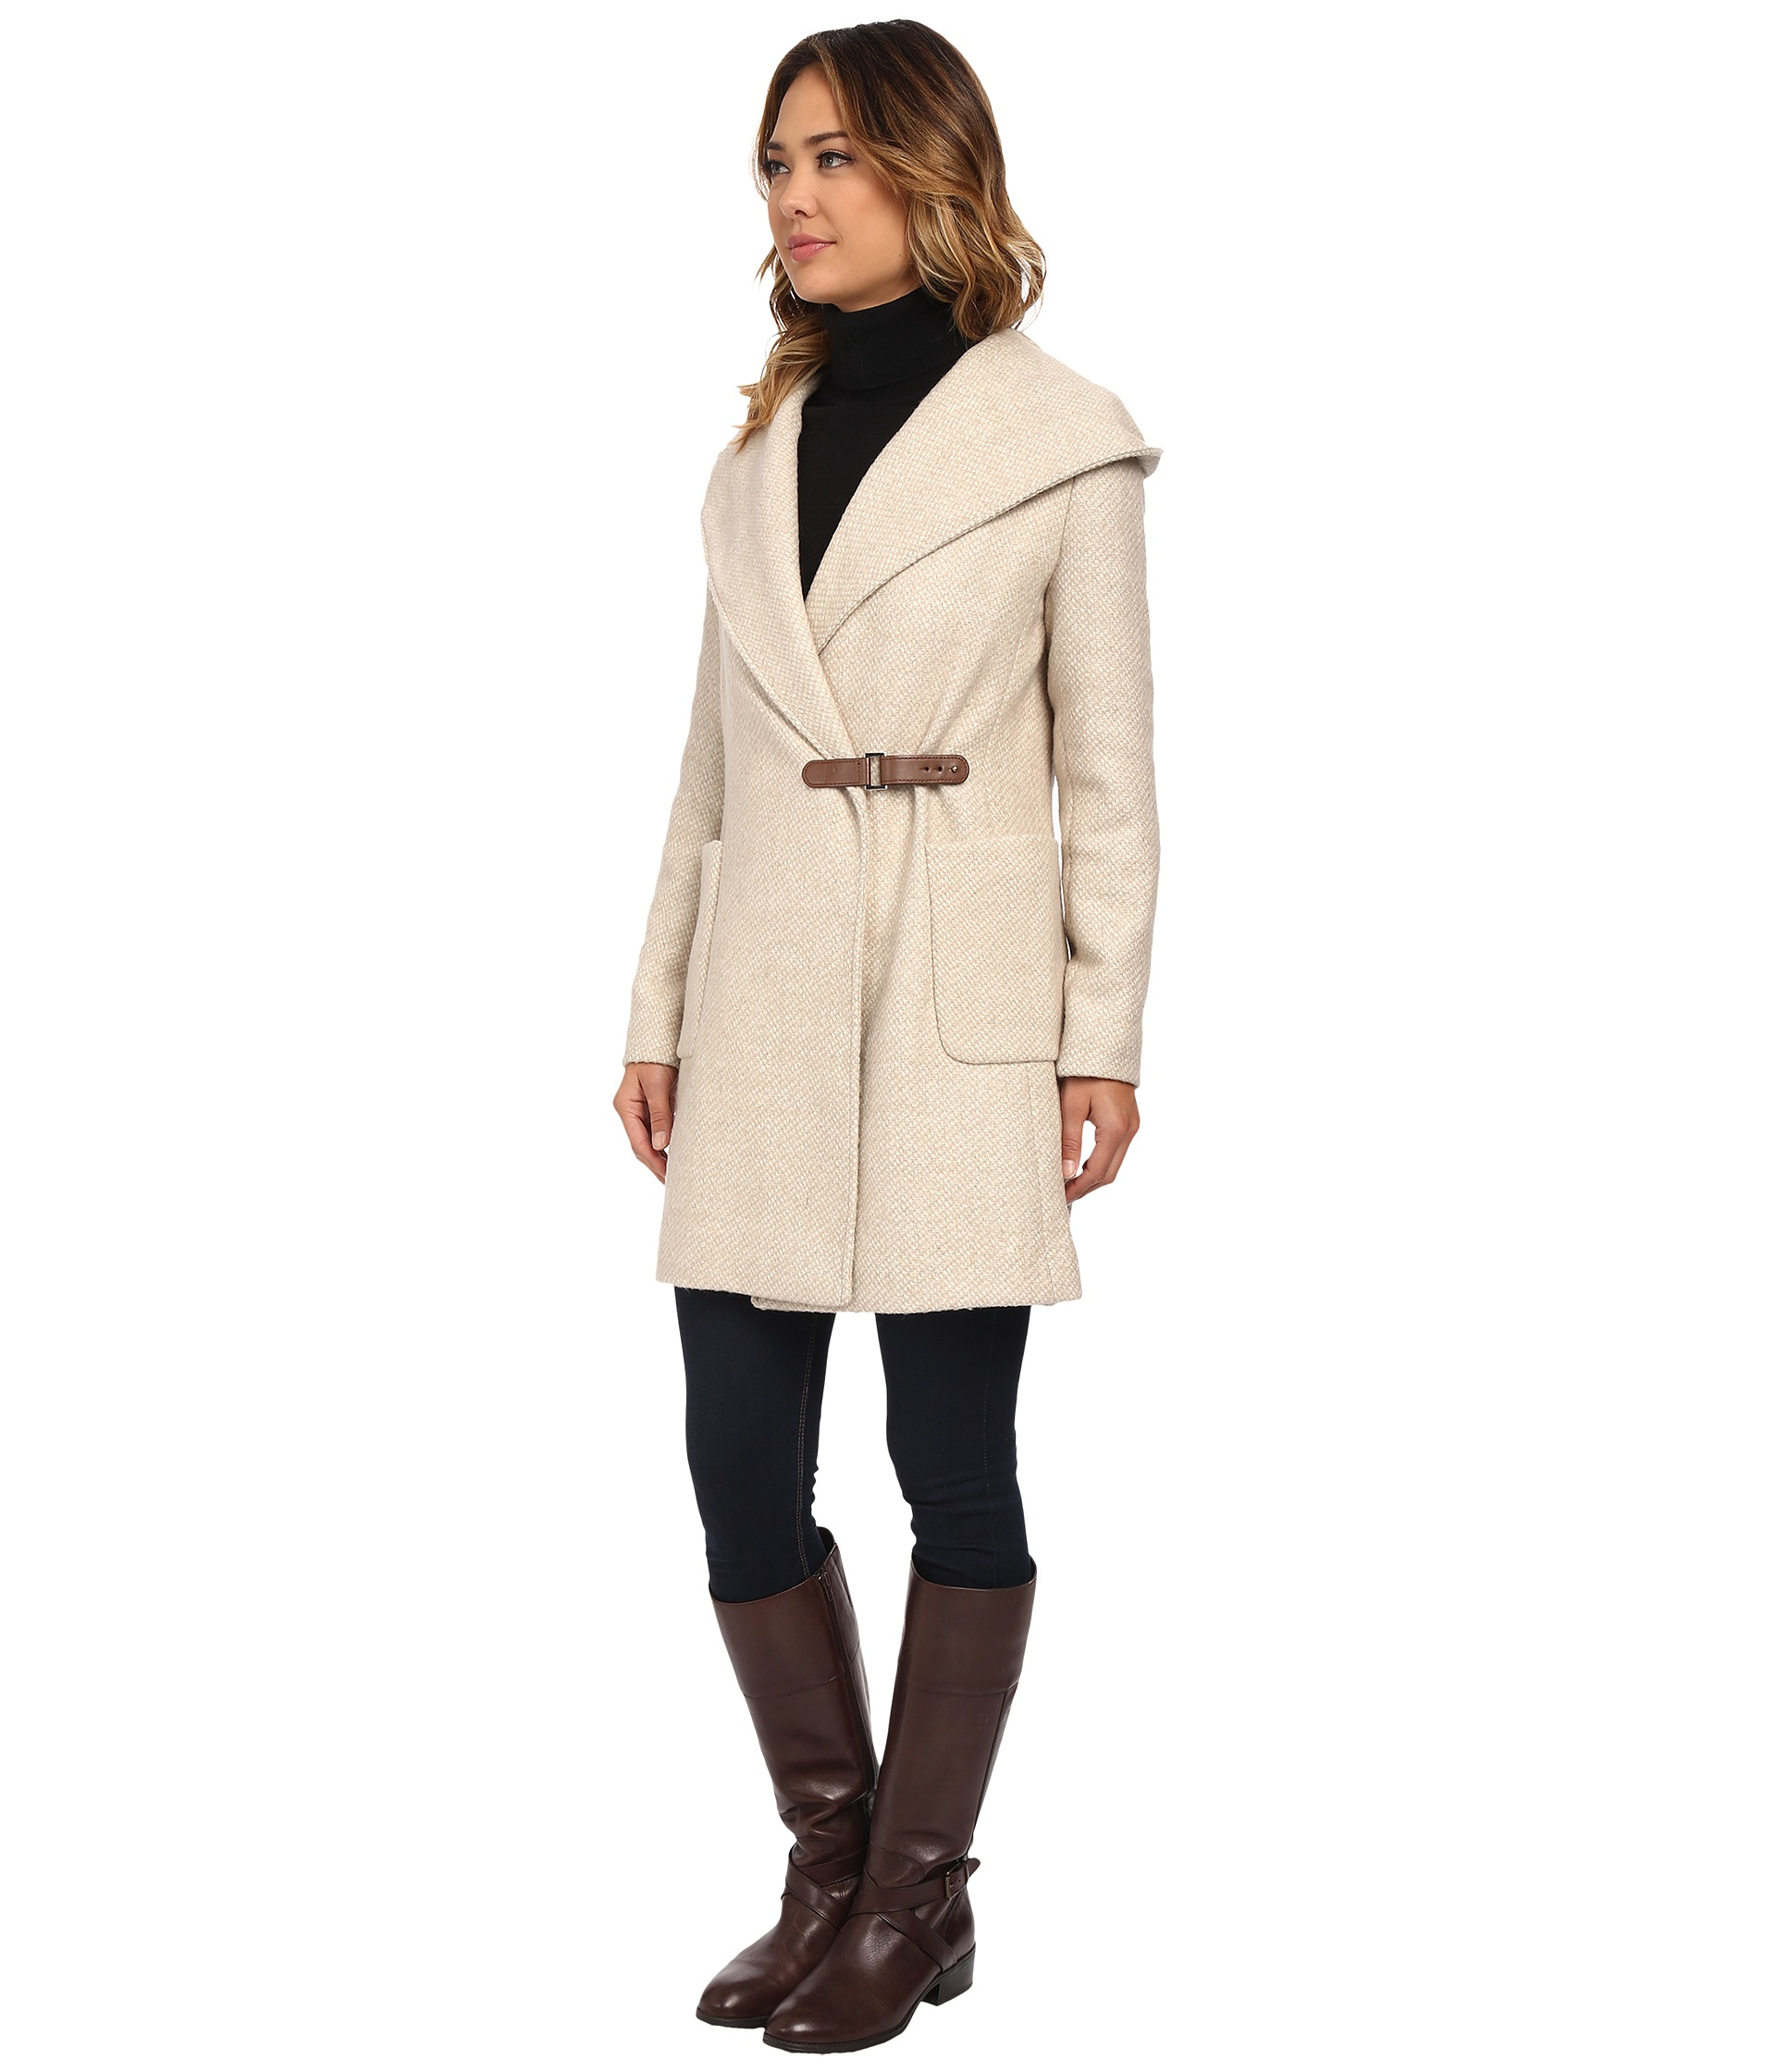 Lauren by ralph lauren Buckle Front Wrap Coat in Natural | Lyst